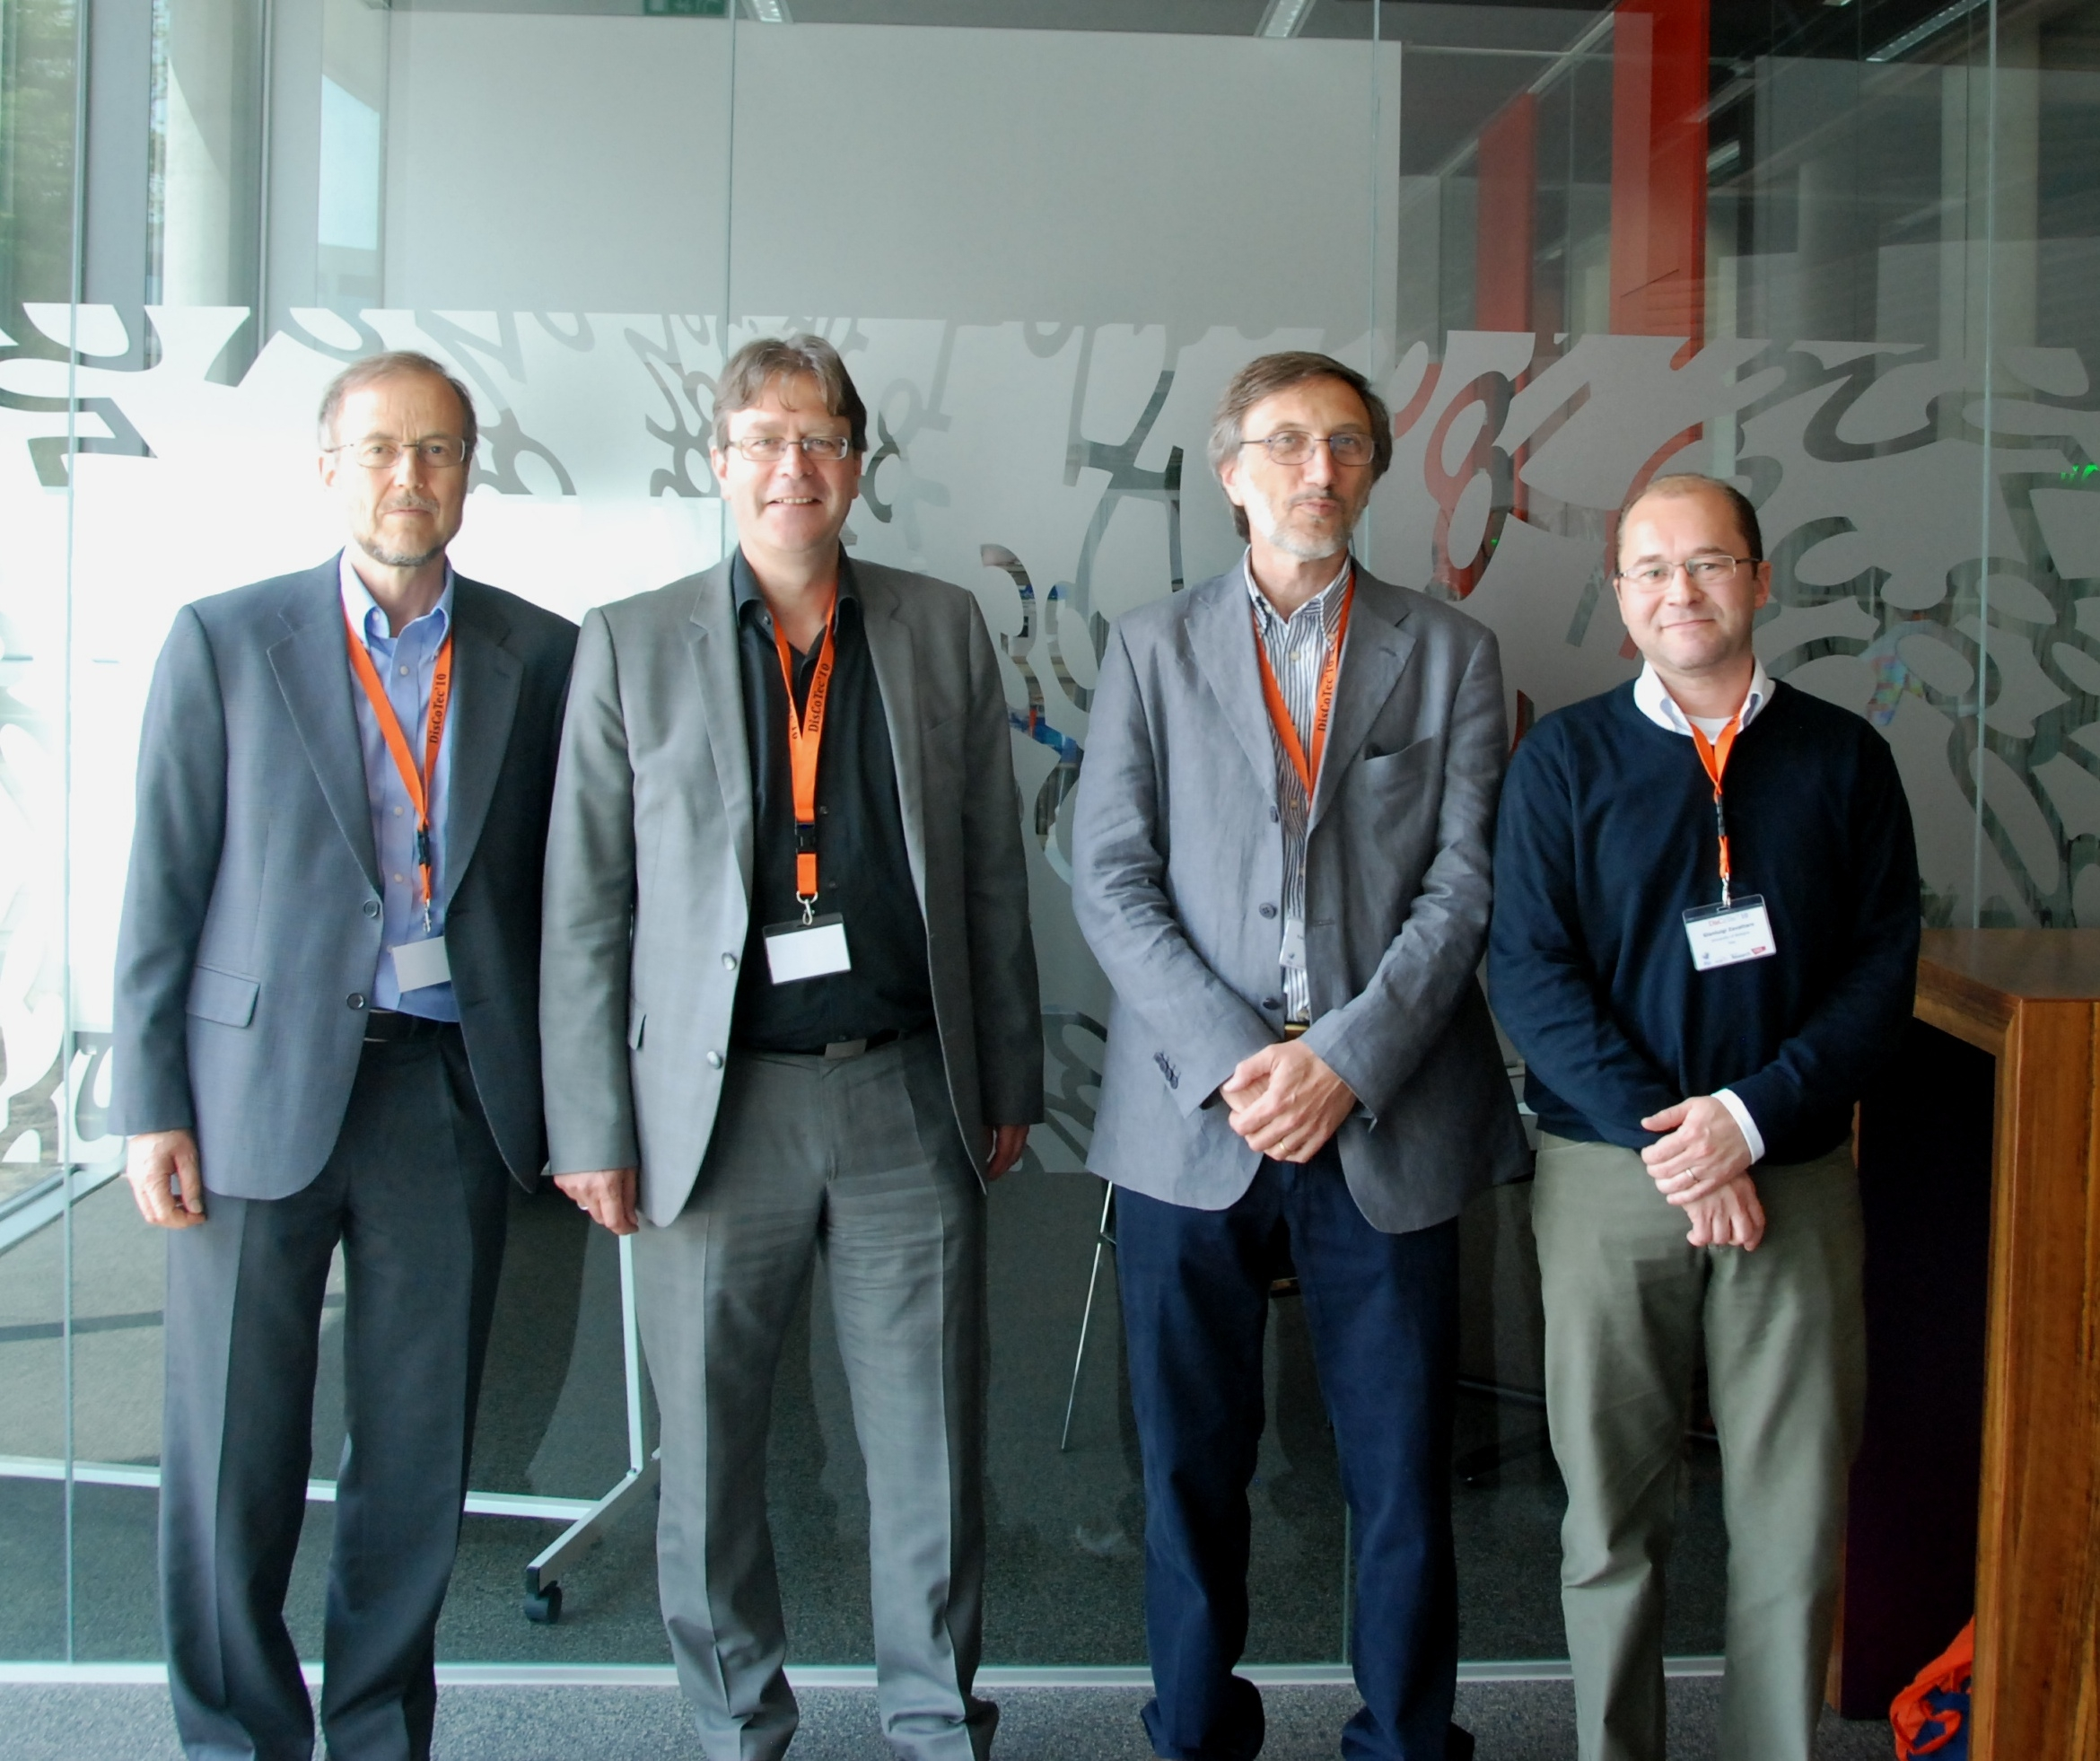 2010 - 30th PSTV anniversary - FORTE conf in Amsterdam - invited-speakers.jpg 8.2K